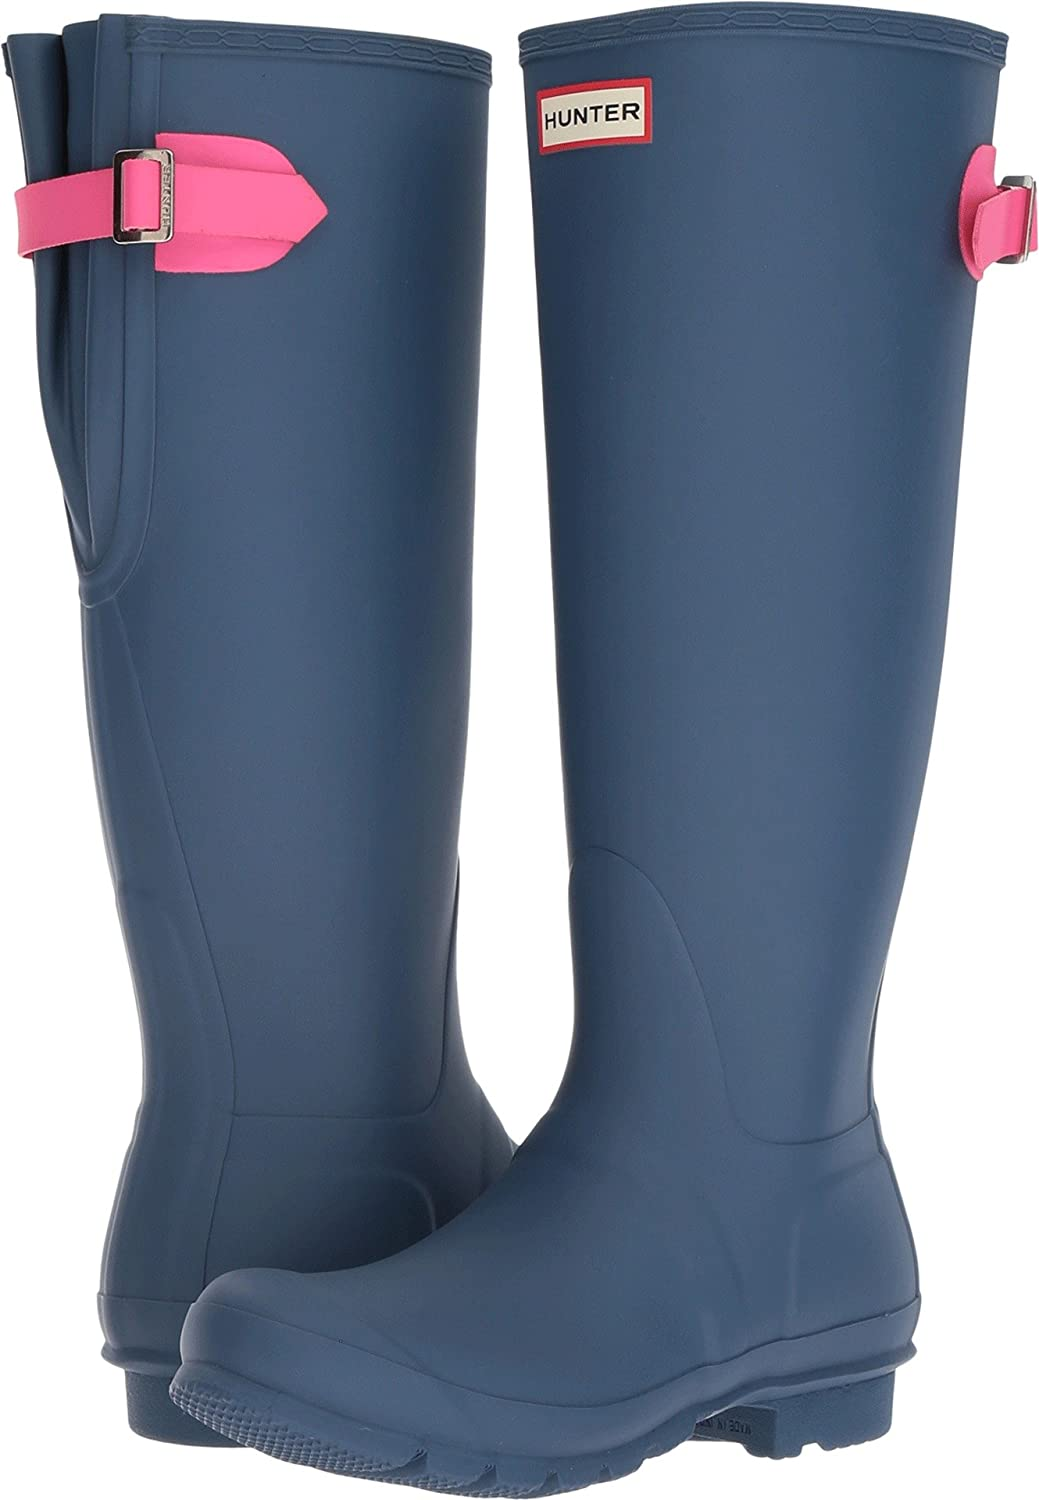 Hunter Womens Original Back Adjustable Rain Boots B06ZYKBTF3 7 B(M) US|Dark Earth Blue/Ion Pink